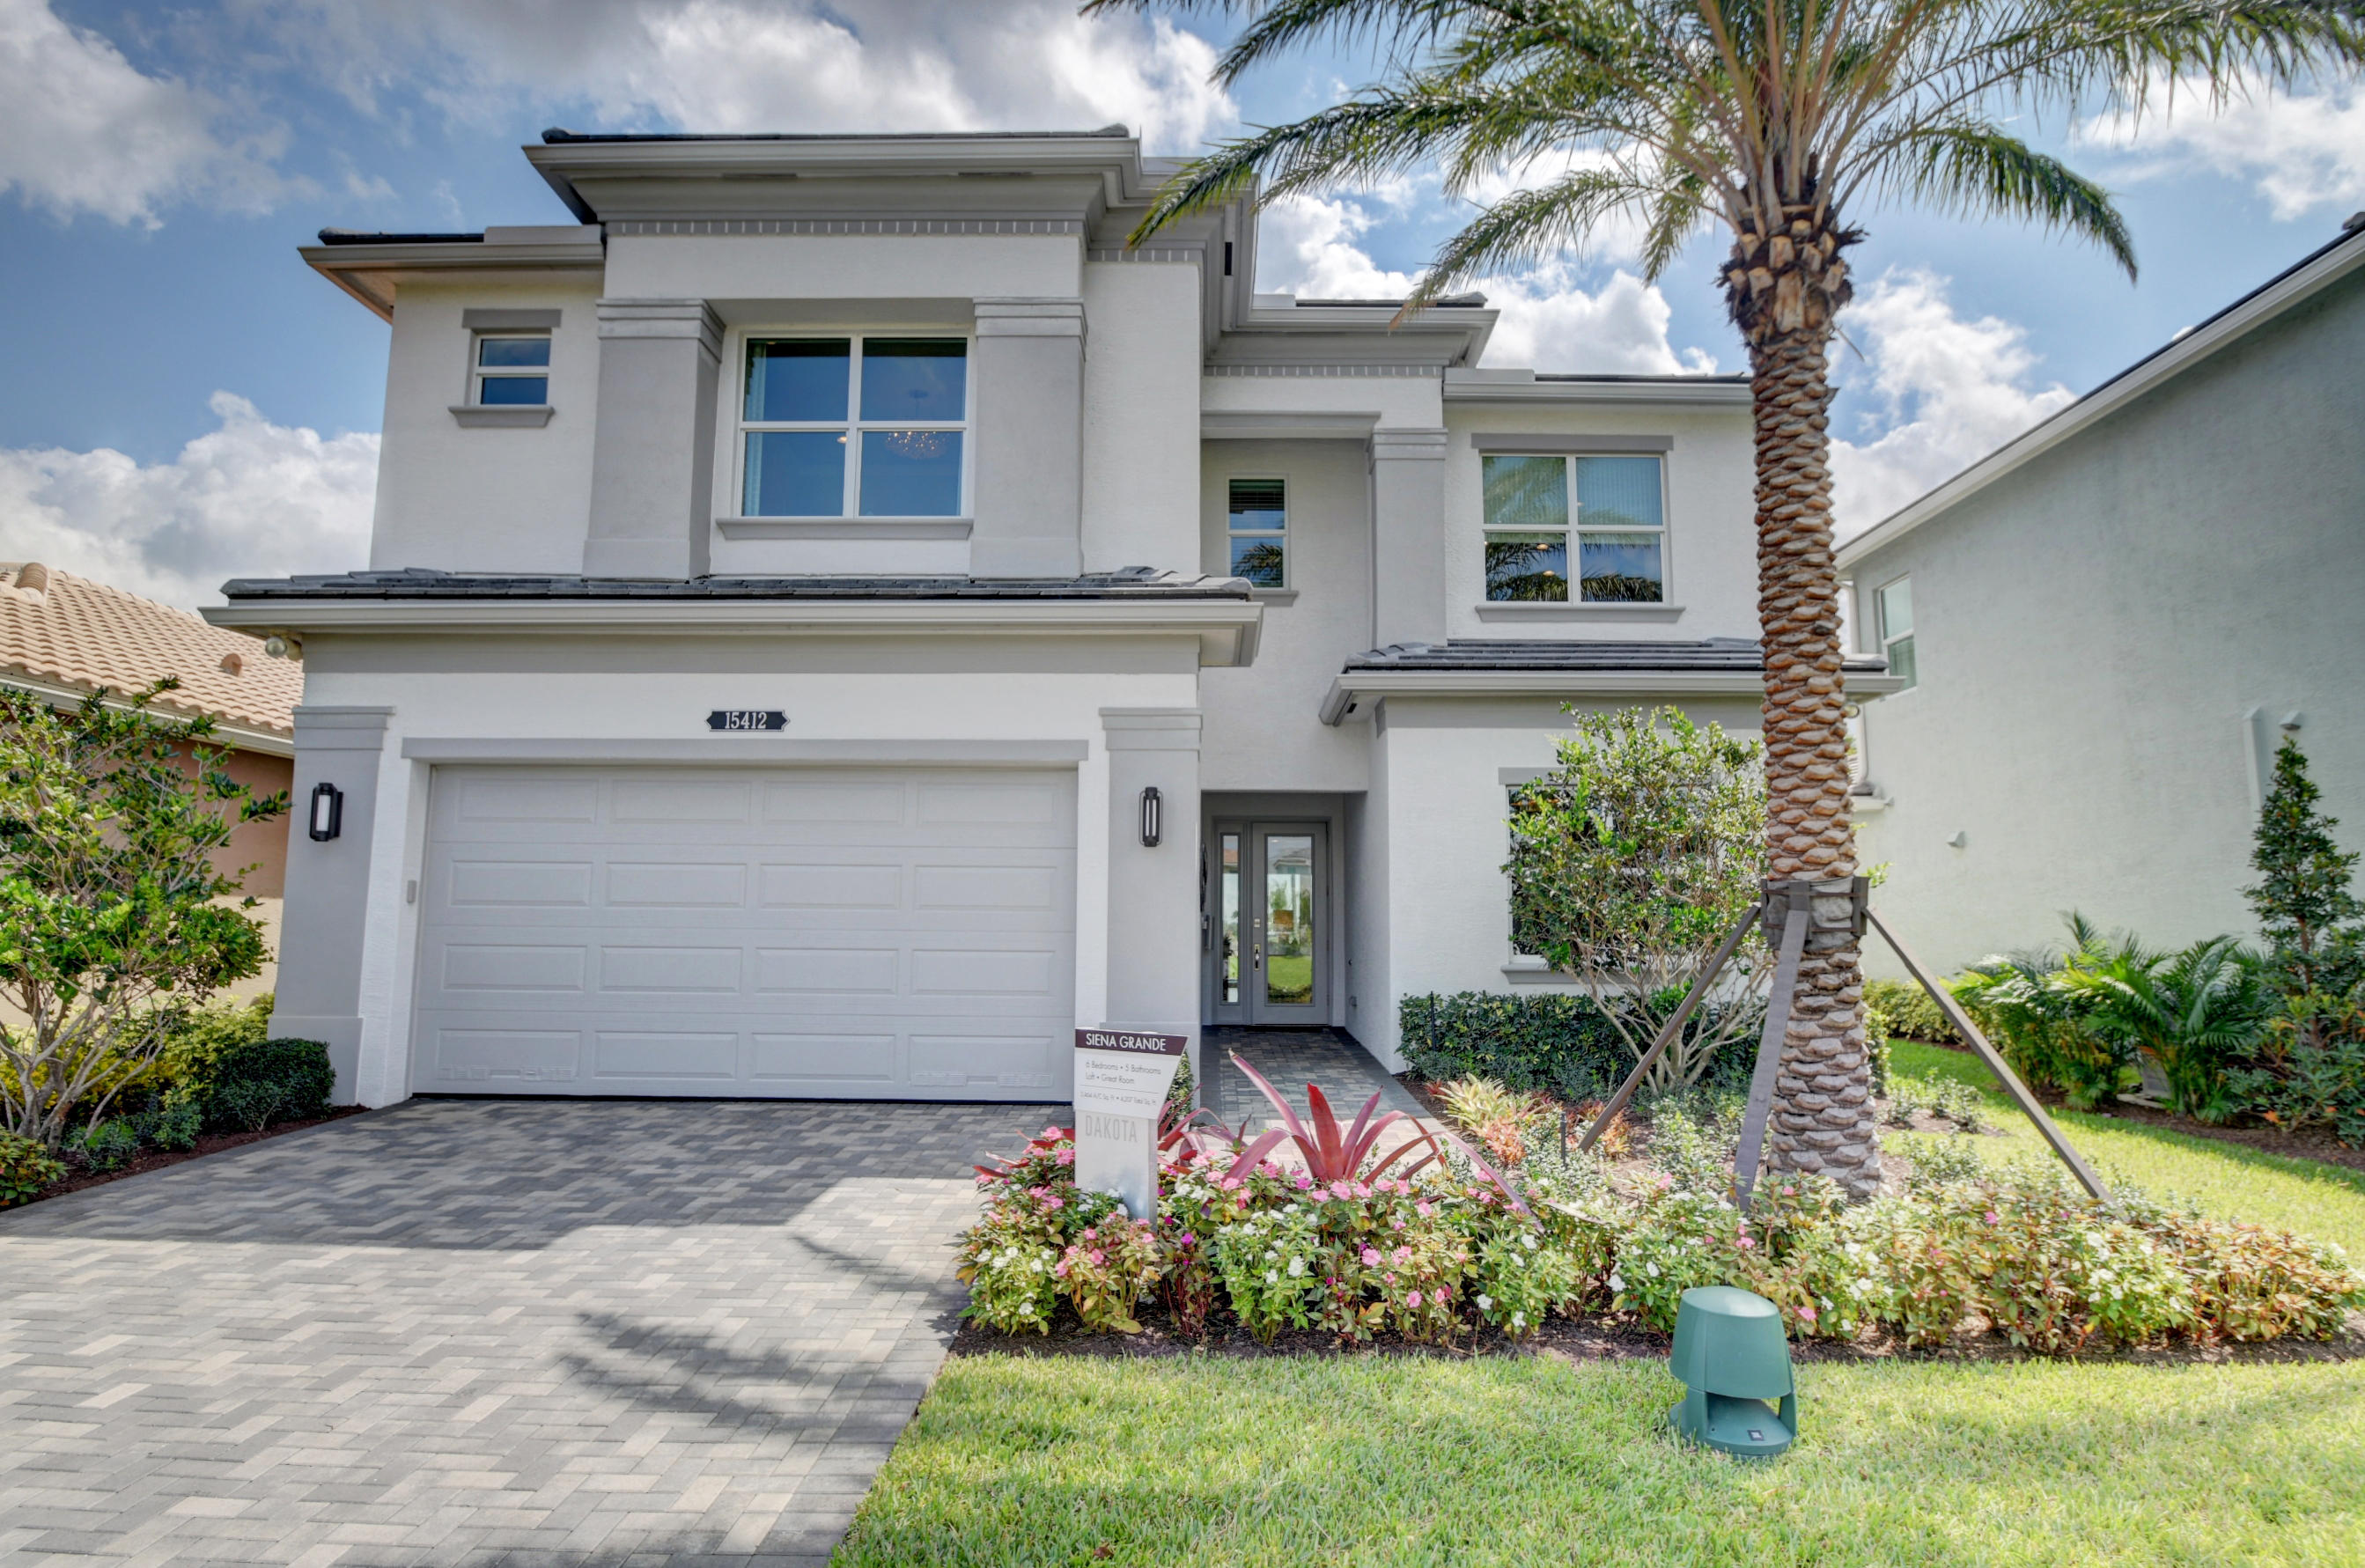 DAKOTA home 15345 Sandy Beach Terrace Delray Beach FL 33446